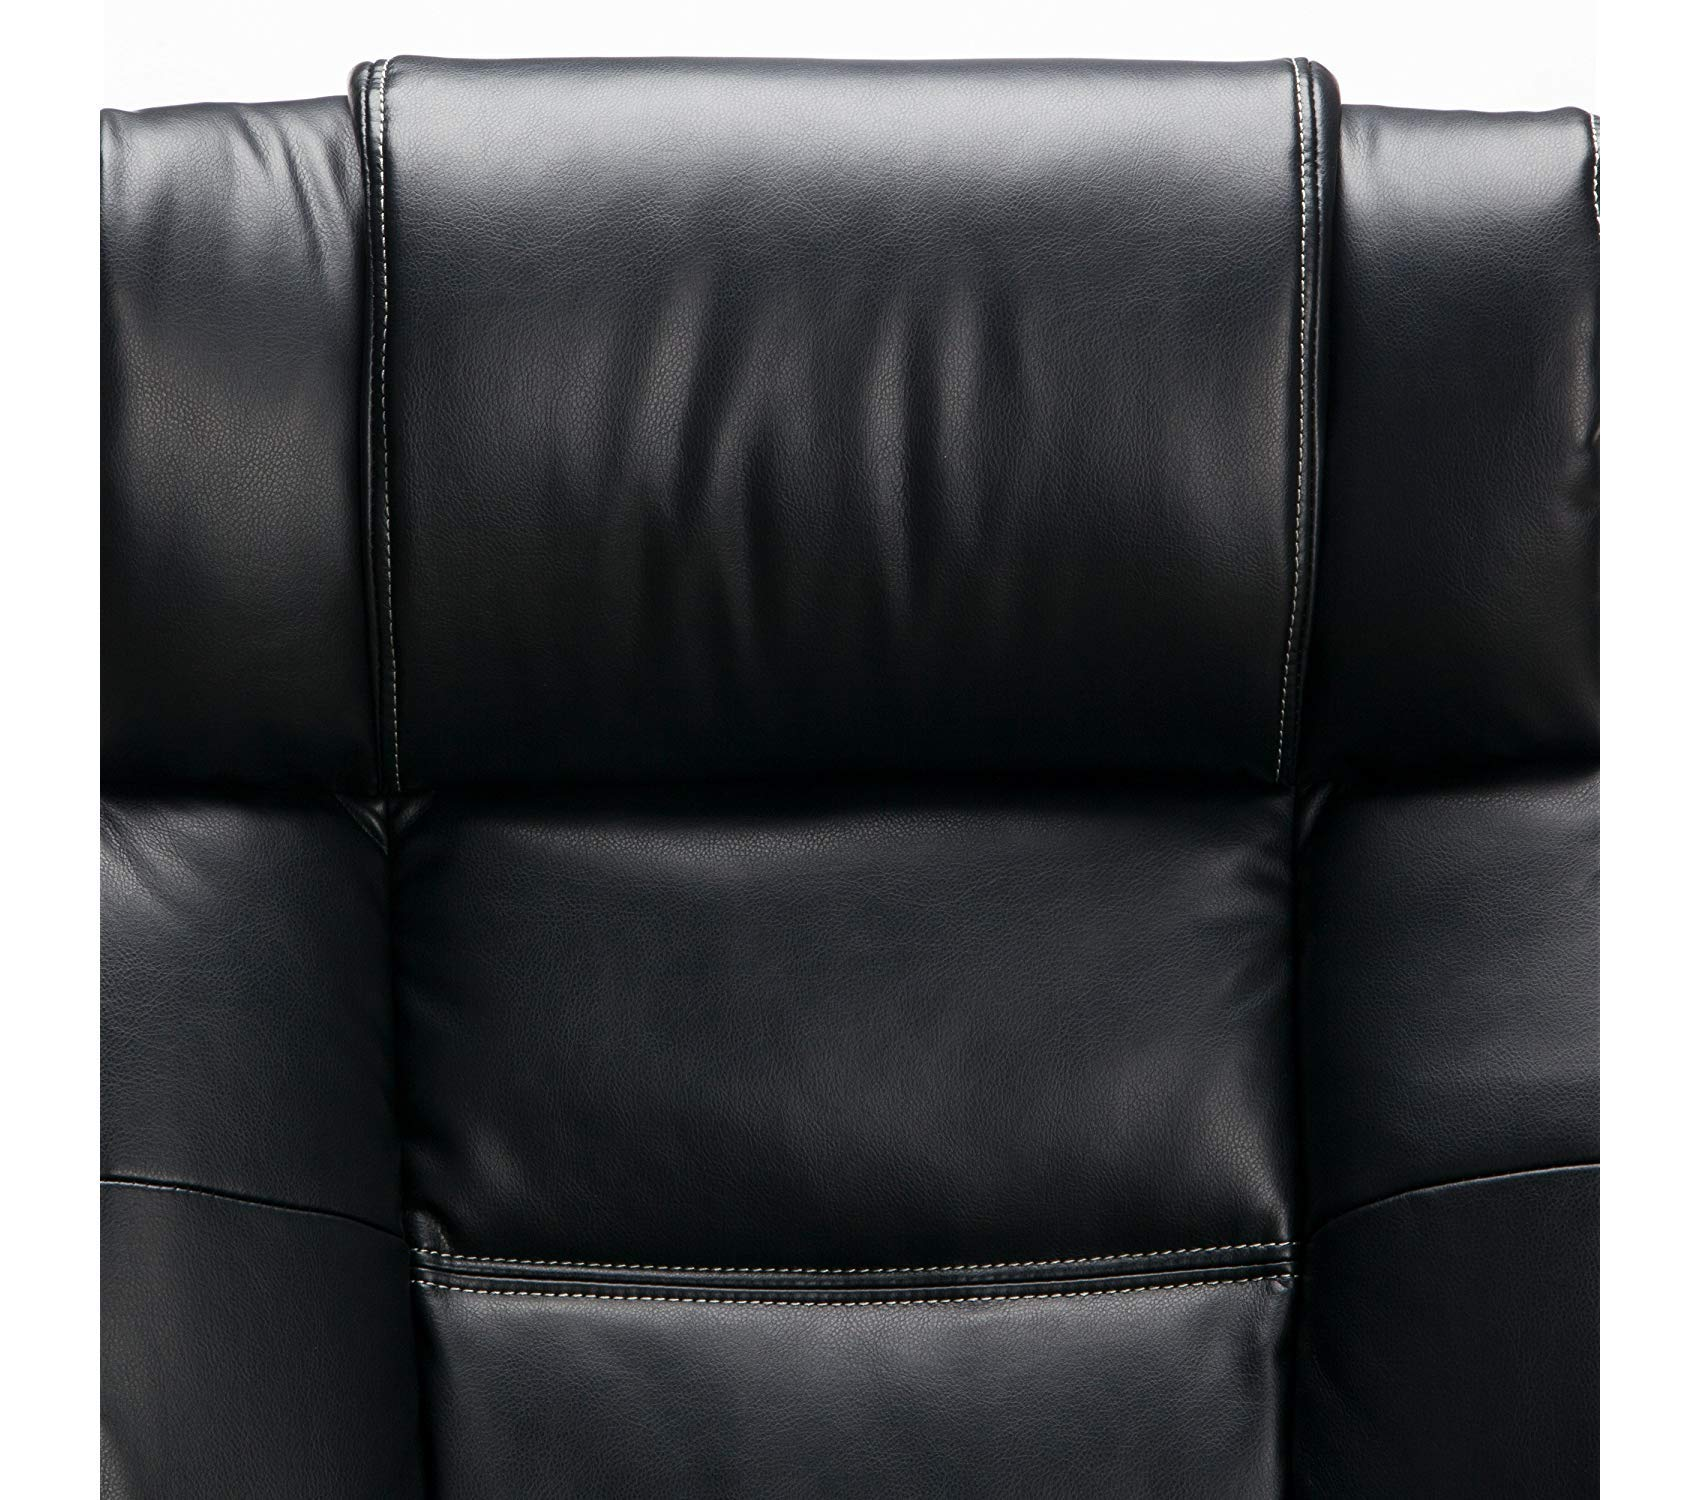 Оfm Avenger Series Big and Tall Leather Executive Chair - Black Computer Chair with Arms, Black/Chrome by Оfm (Image #8)